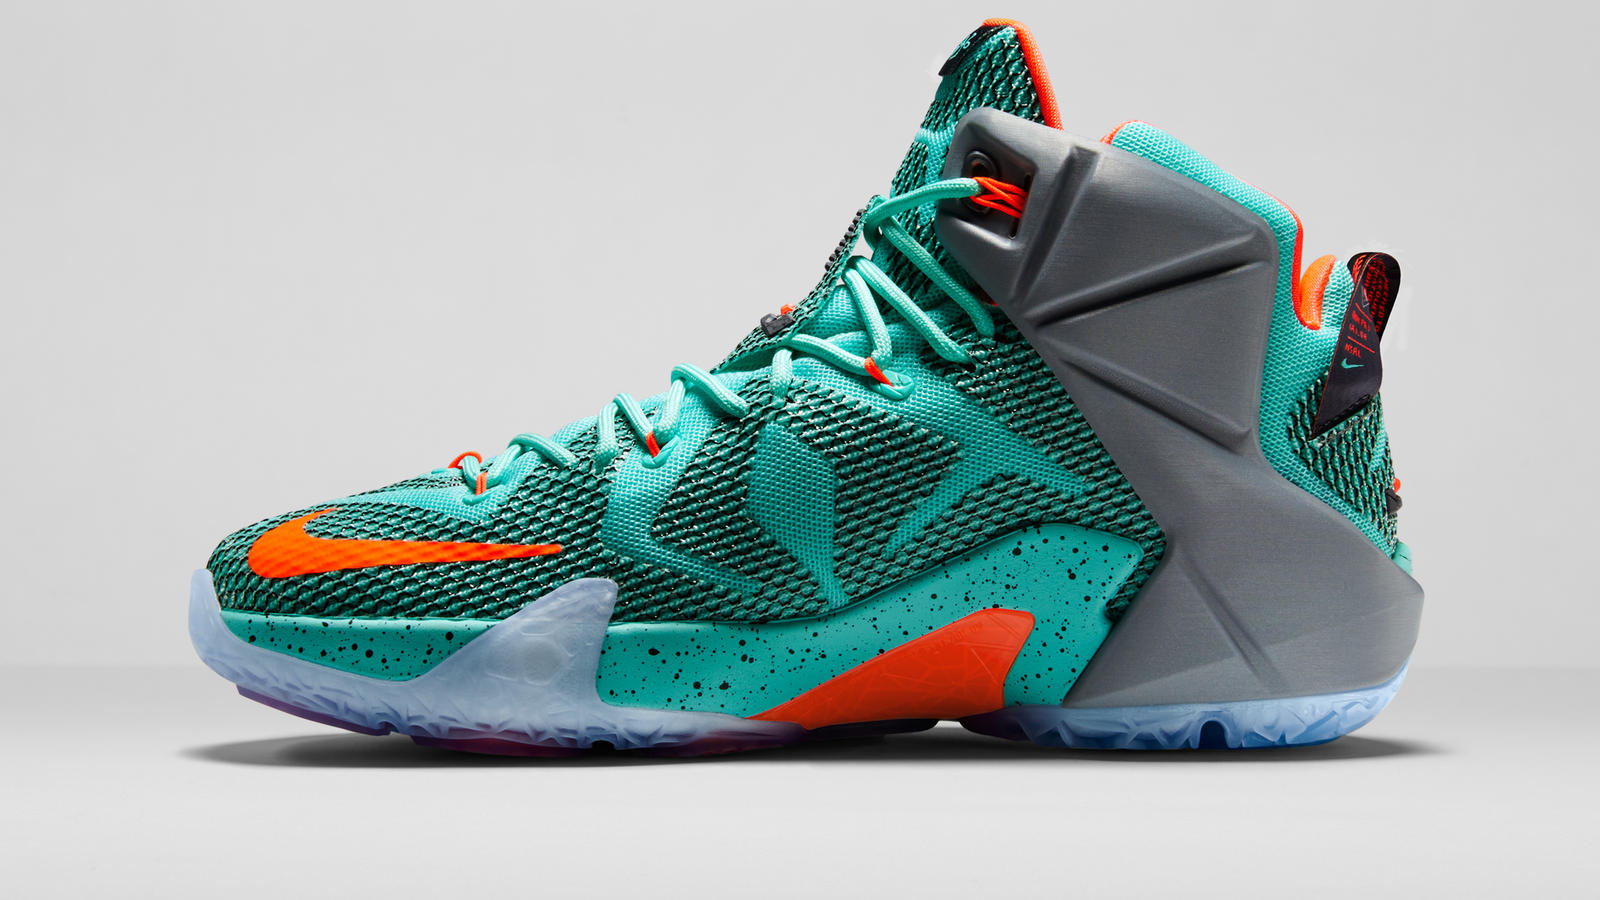 innovative design f7a4c 3b4d2 ... Nike LEBRON 12 Engineered for Explosiveness - Nike News ...